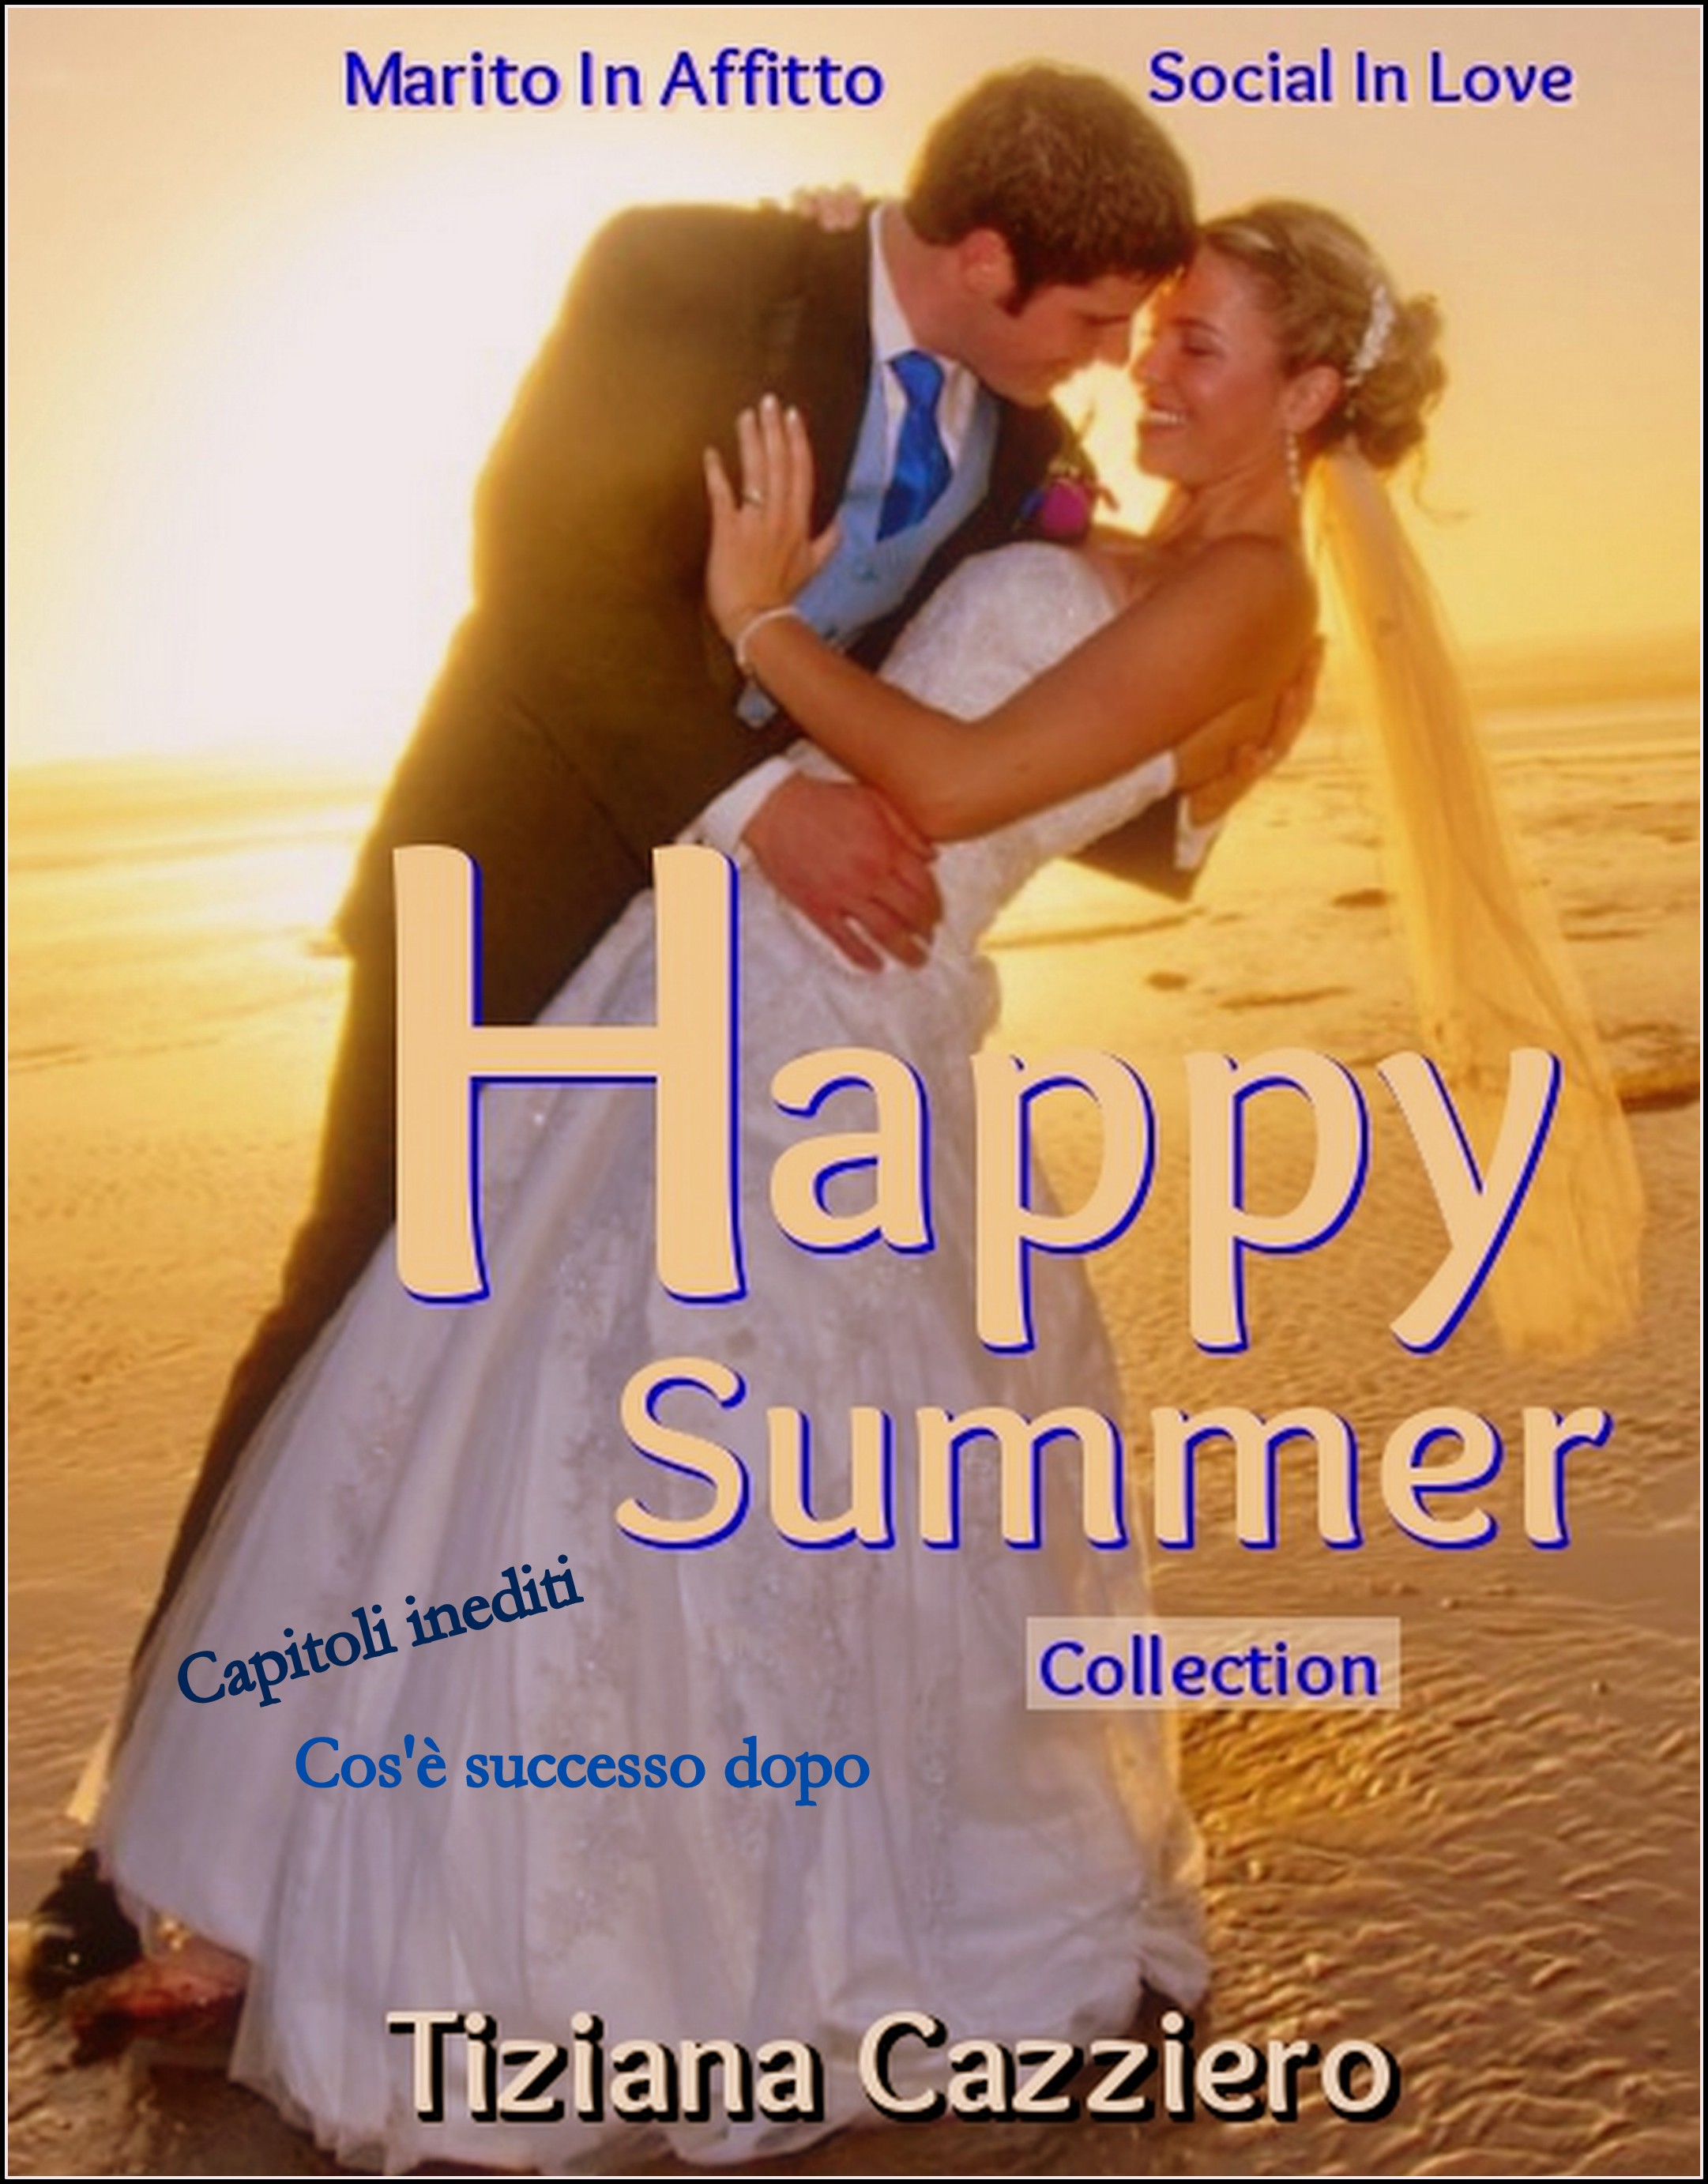 Happy Summer Collection on line di Tiziana Cazziero. Due romanzi in 1 libro